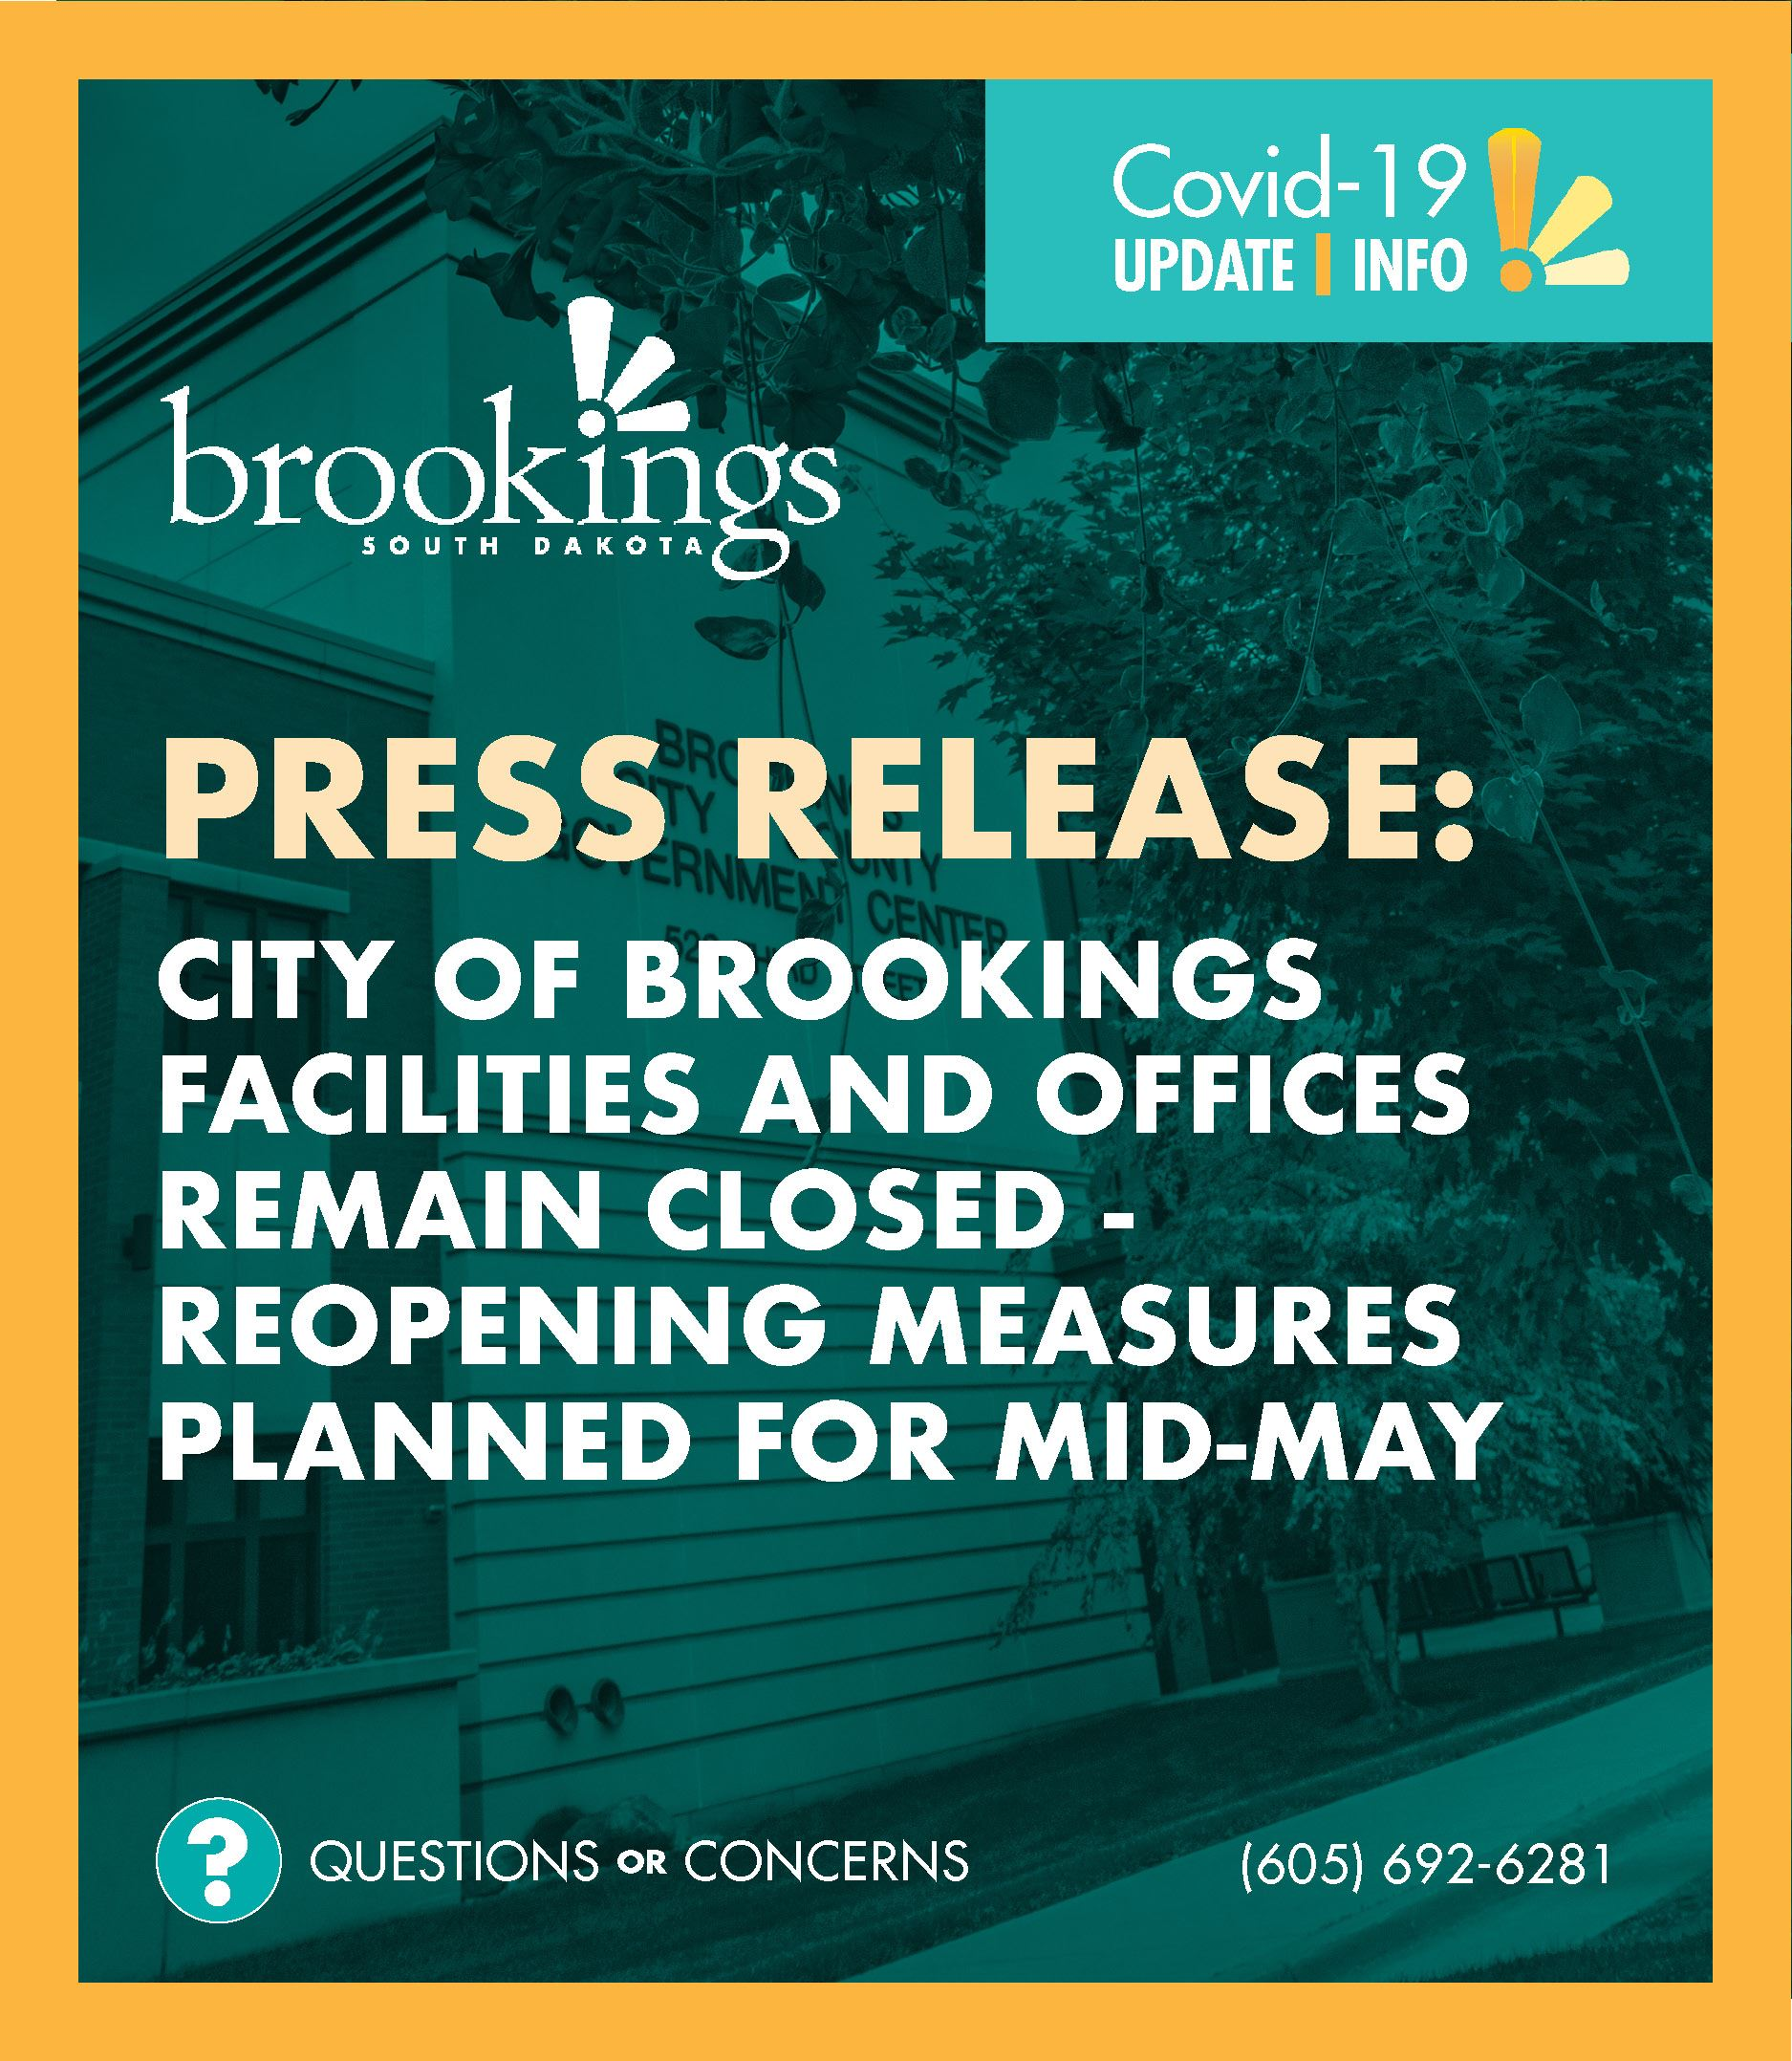 City of BrookingsPRESS RELEASE GRAPHIC: Facilities and Offices Remain Closed - Reopening Measures Pl